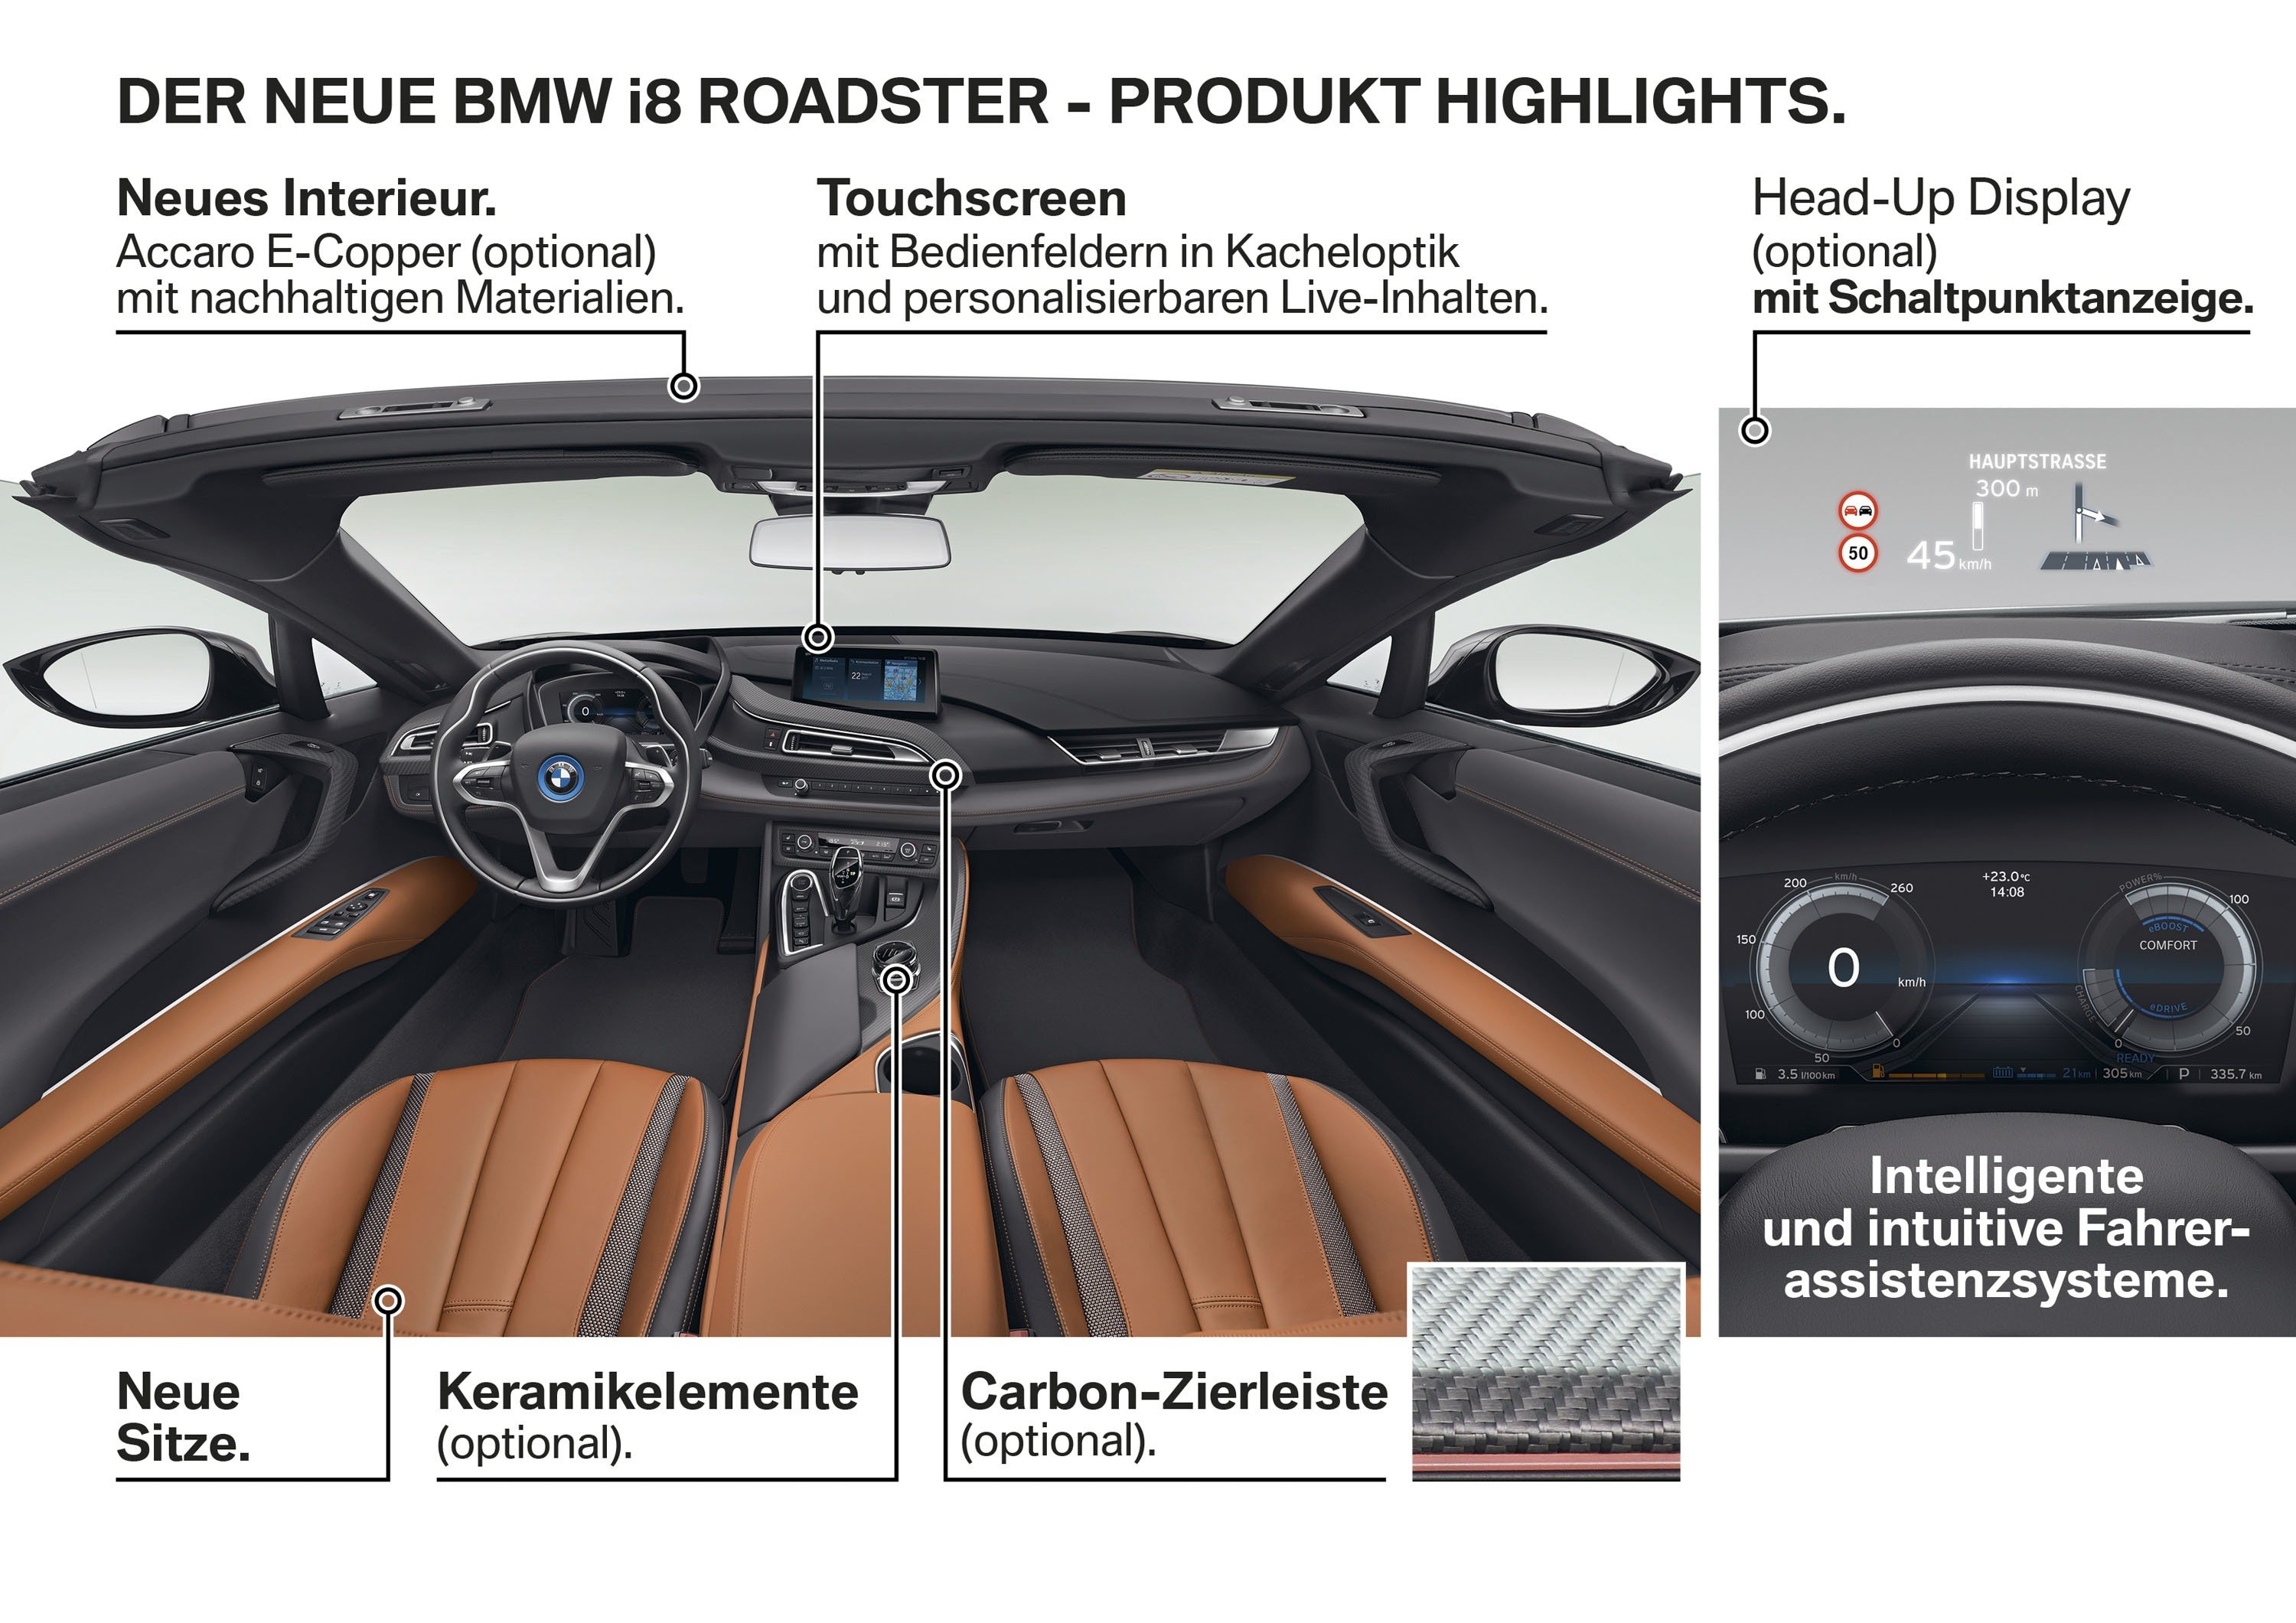 new interior color schemes for the 2019 model year